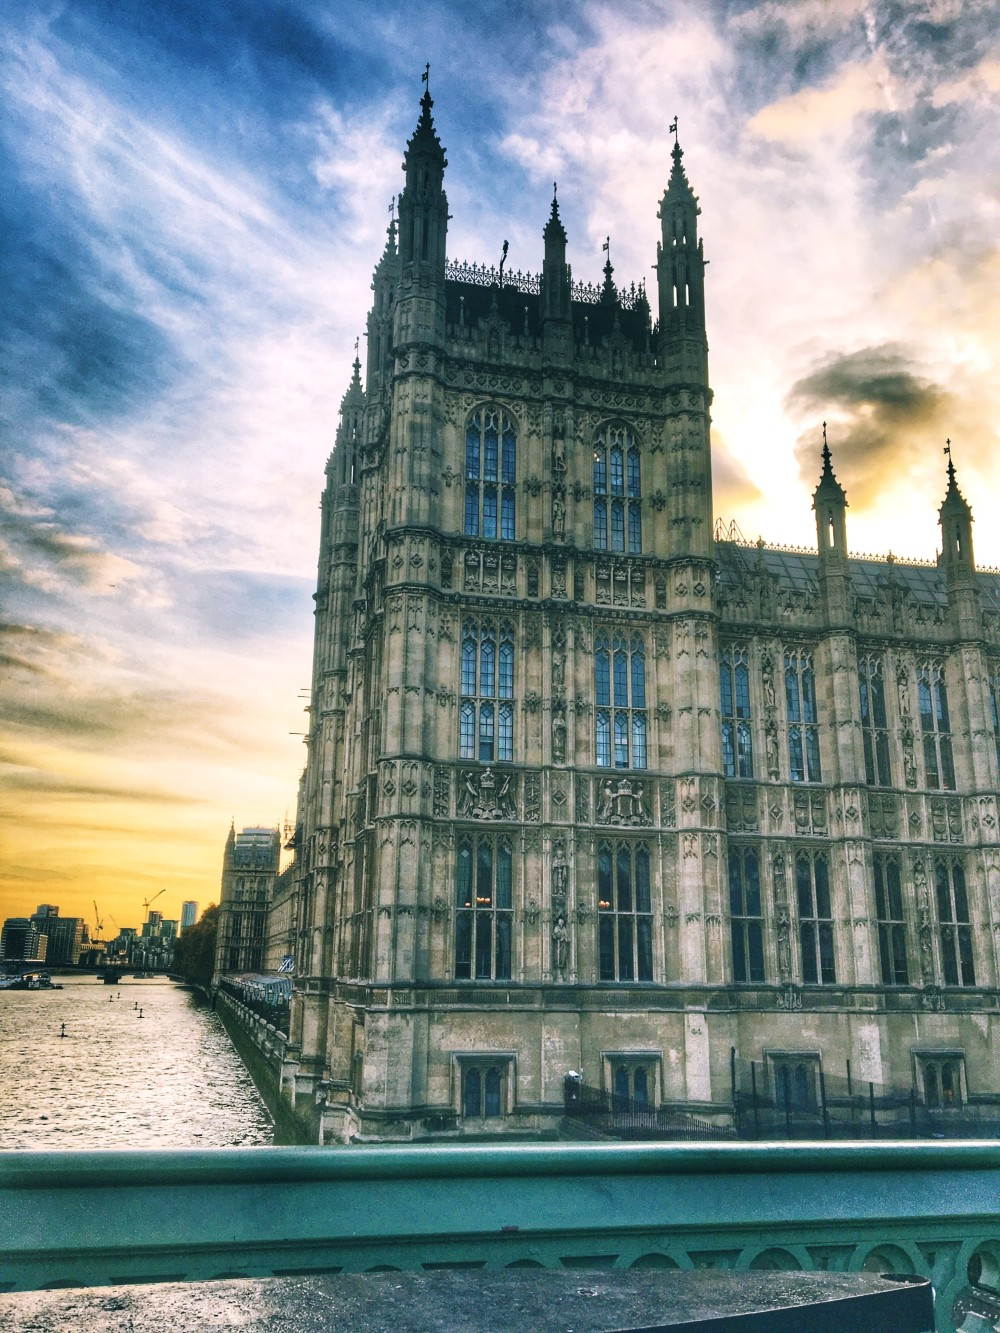 London Parliament along the Thames River